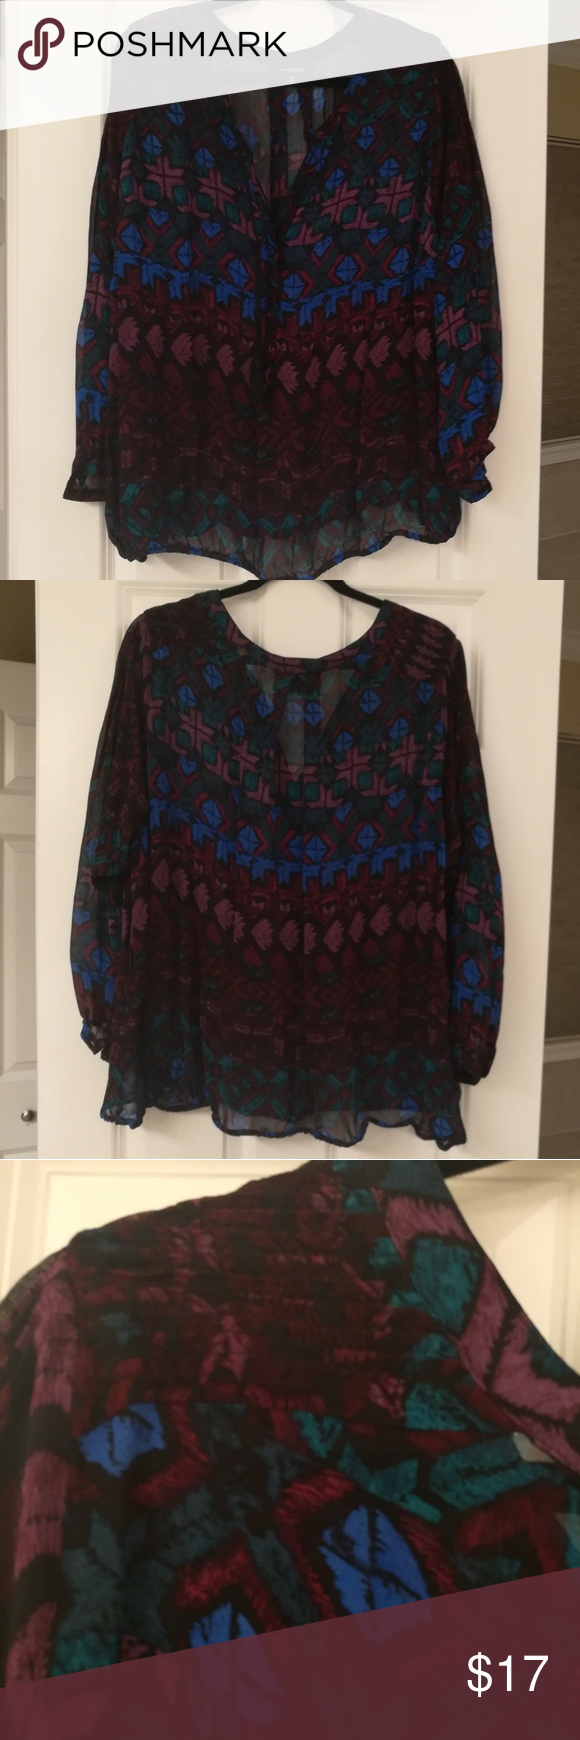 EUC Lucky sheer blouse sz 3x This blouse is beautiful but more sheer than I prefer. It is black with blue, burgundy, and teal abstract designs on it. It has a pretty ribbed stitching at the shoulders and an elasticized hem. This item has only been worn once and comes from a pet and smoke-free home. Lucky Brand Tops Blouses